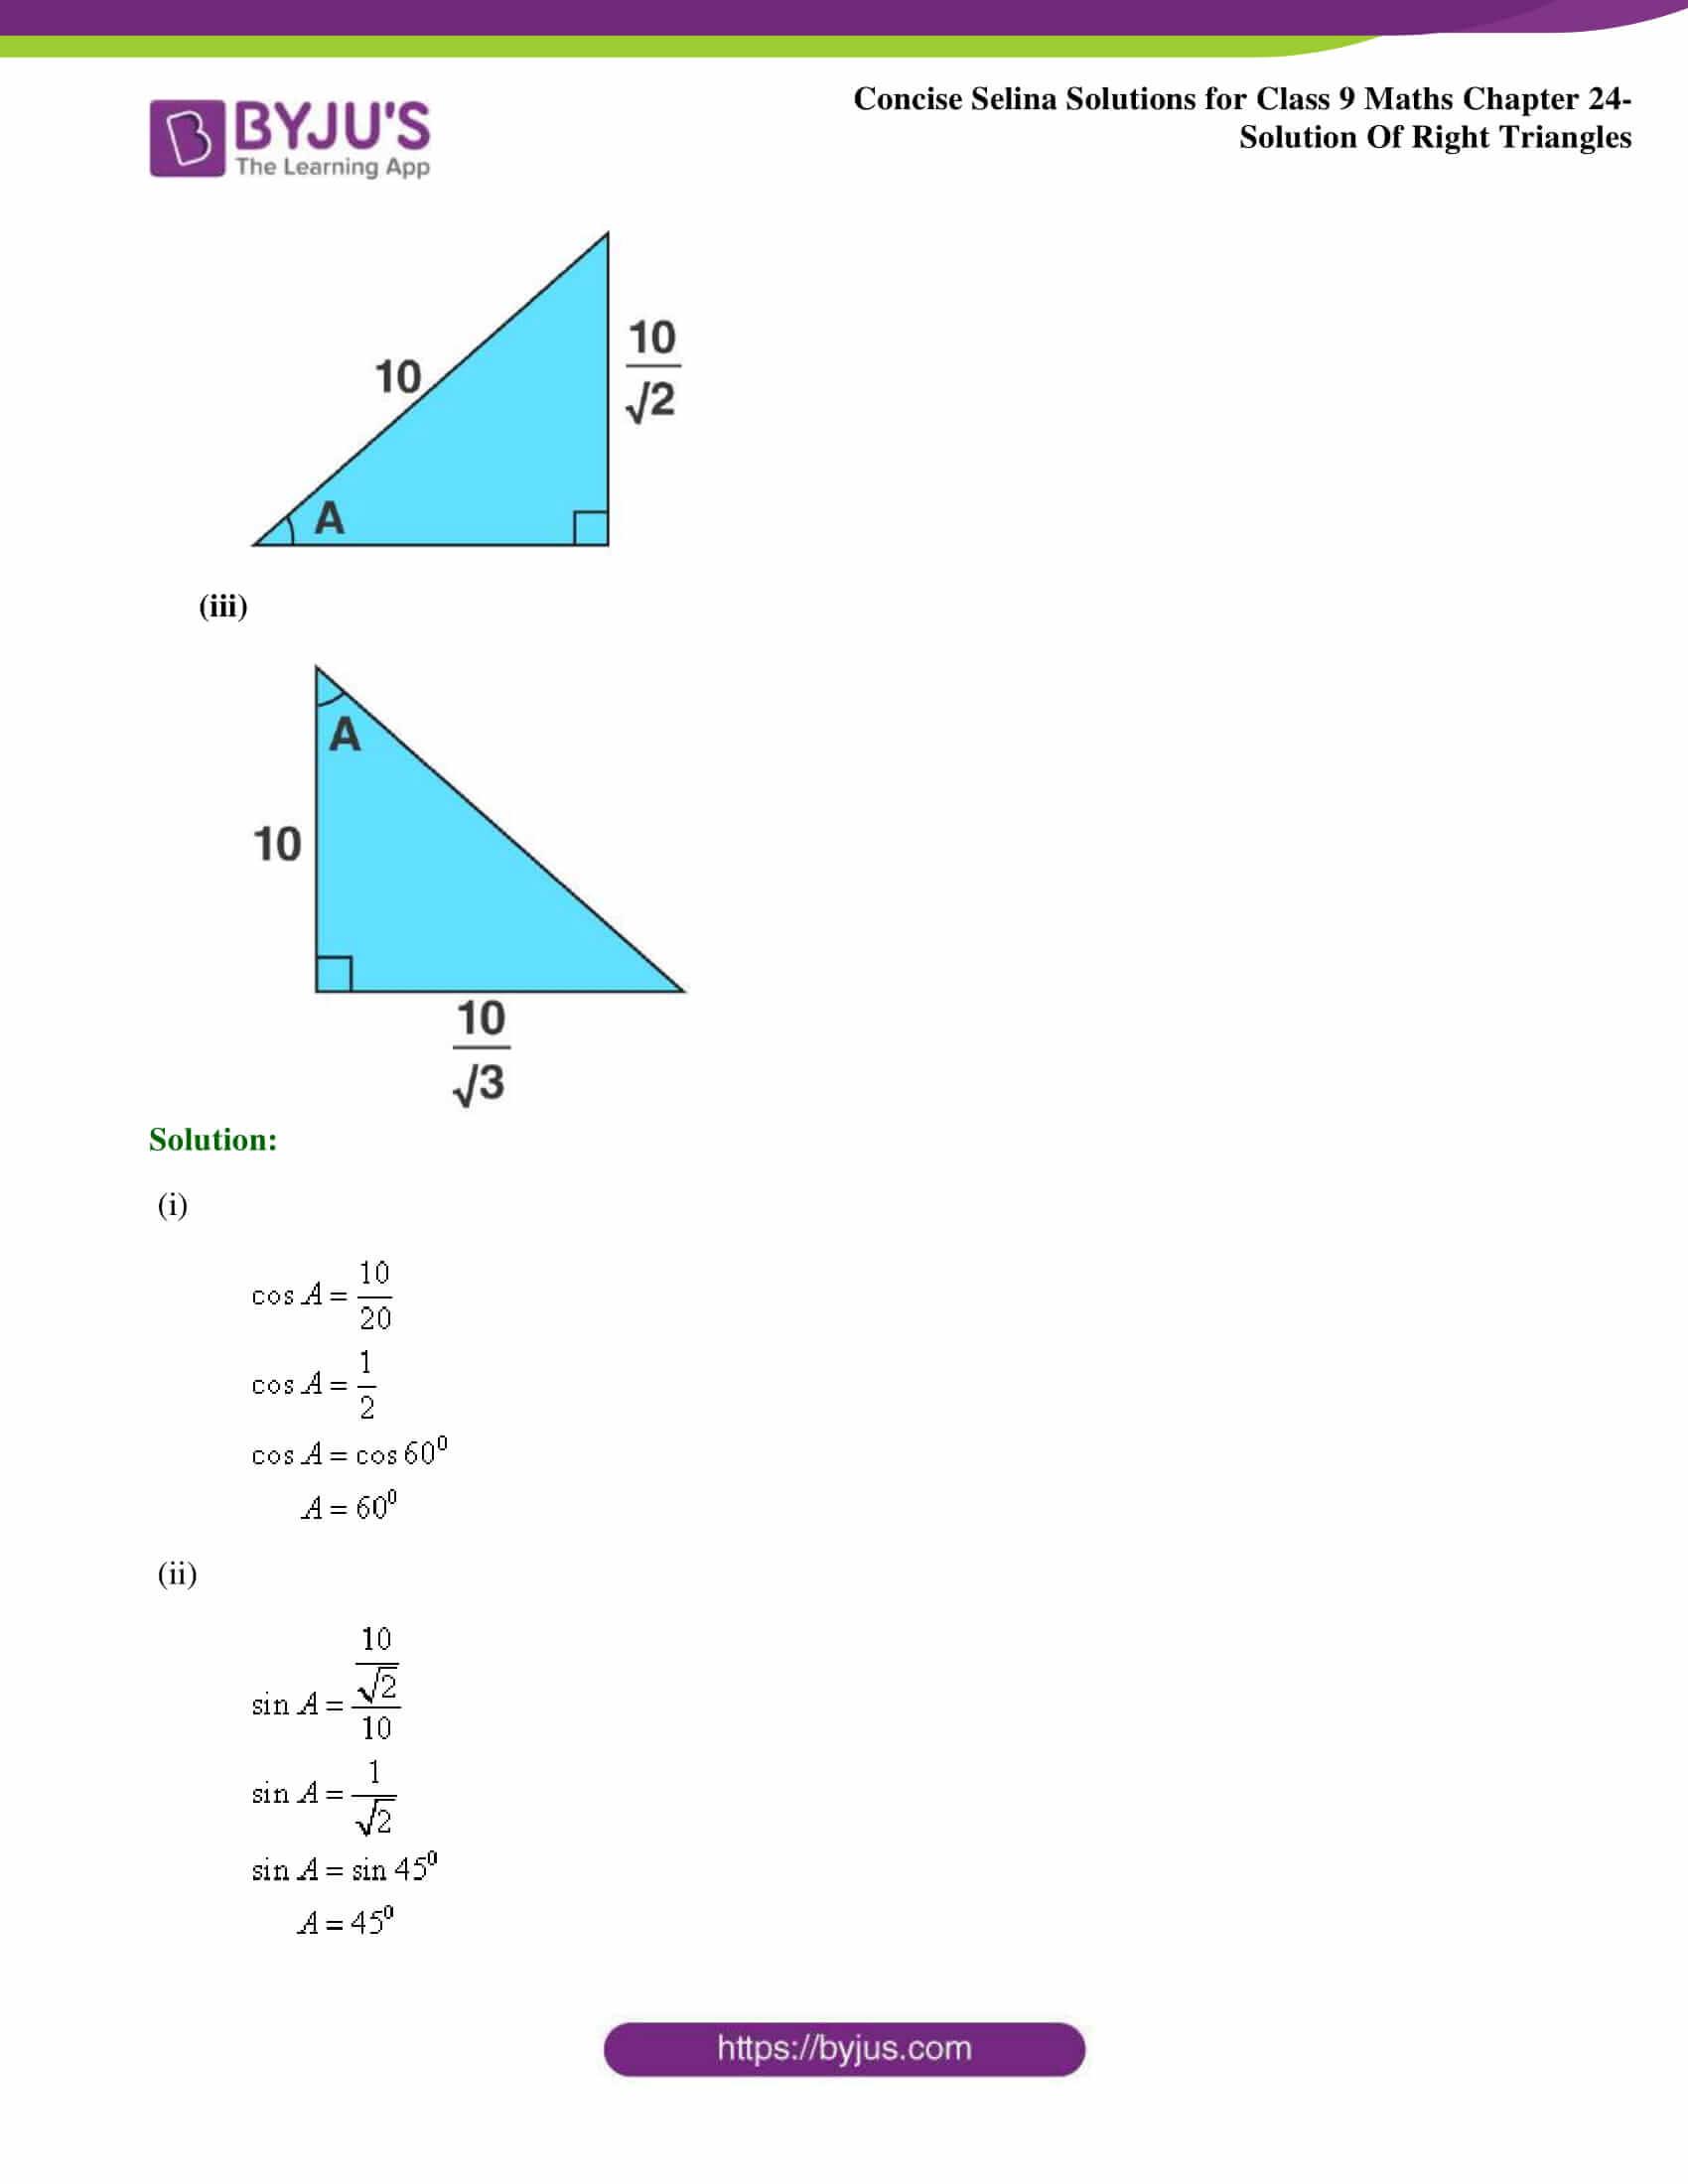 Concise Selina Solutions Class 9 Maths Chapter 24 Solution Of Right Triangles part 03